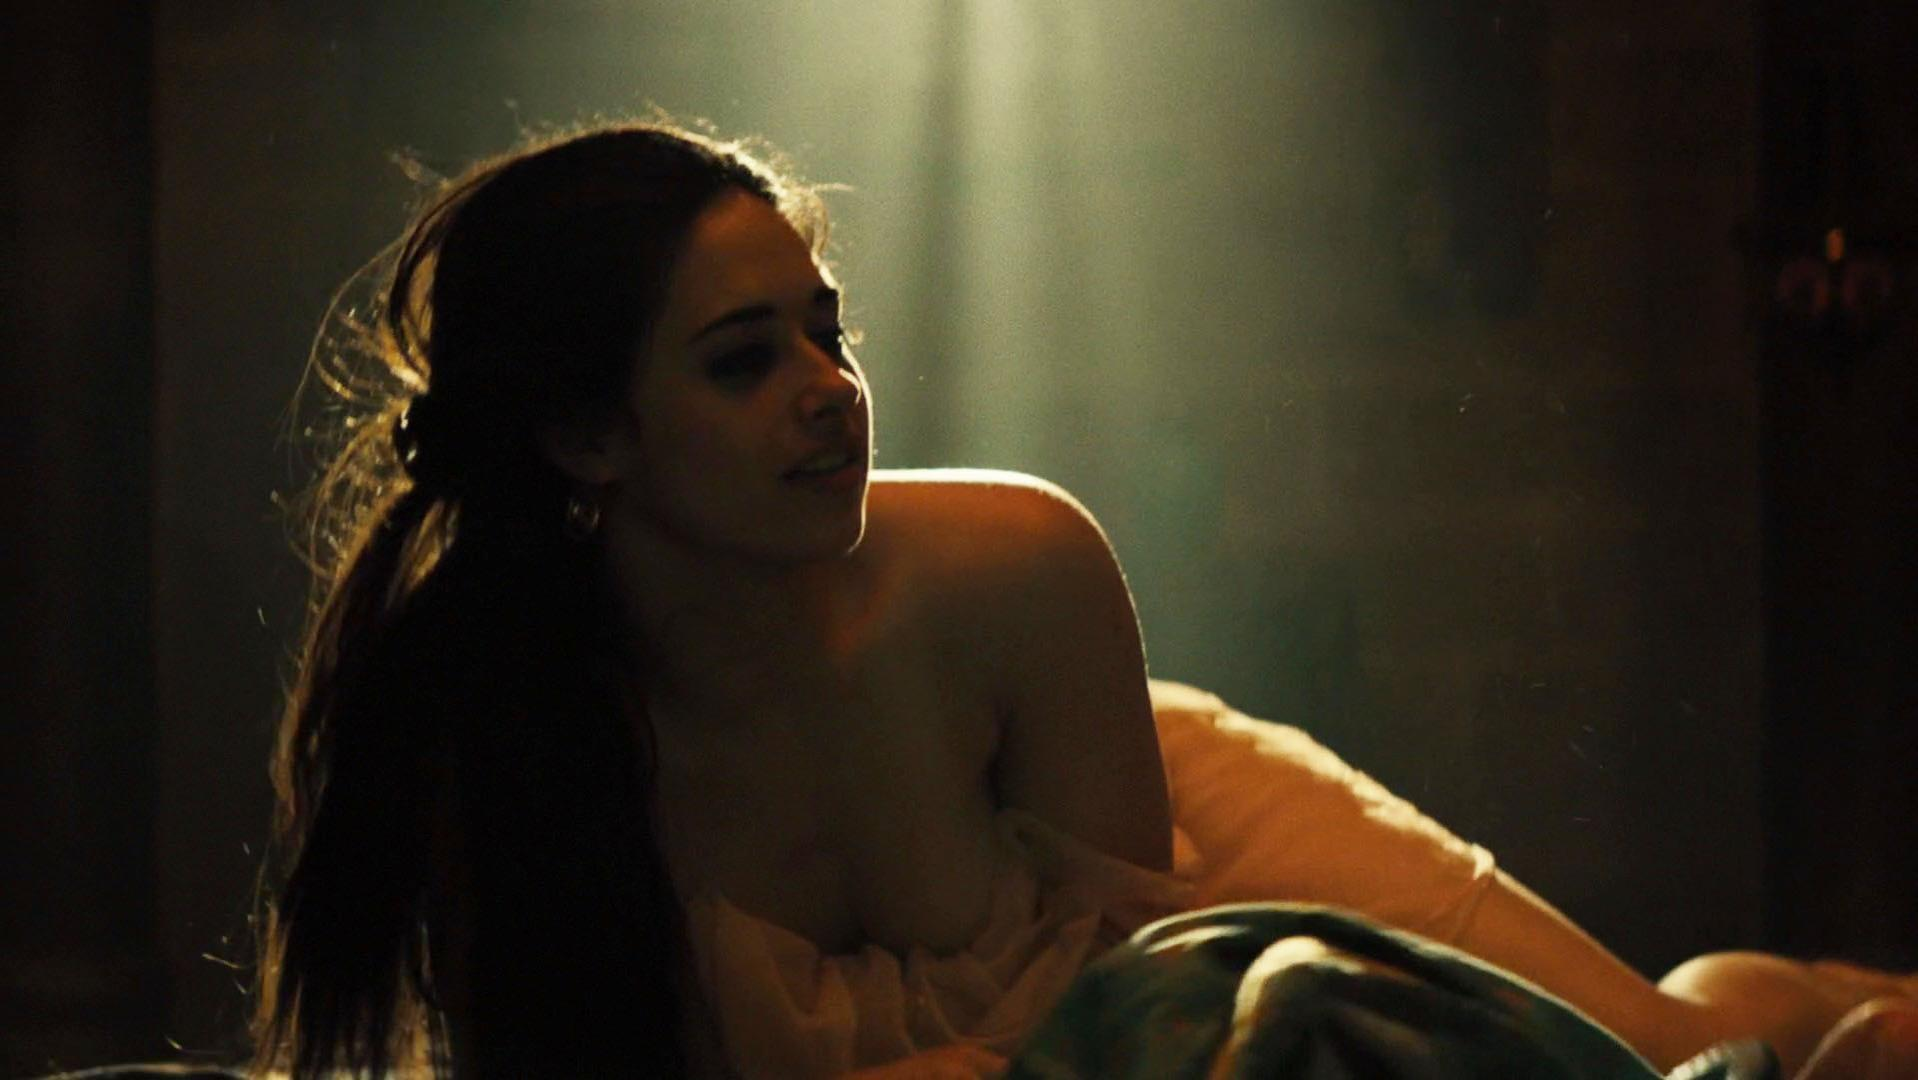 Jeanine Mason nude - Of Kings and Prophets s01e01 (2016)